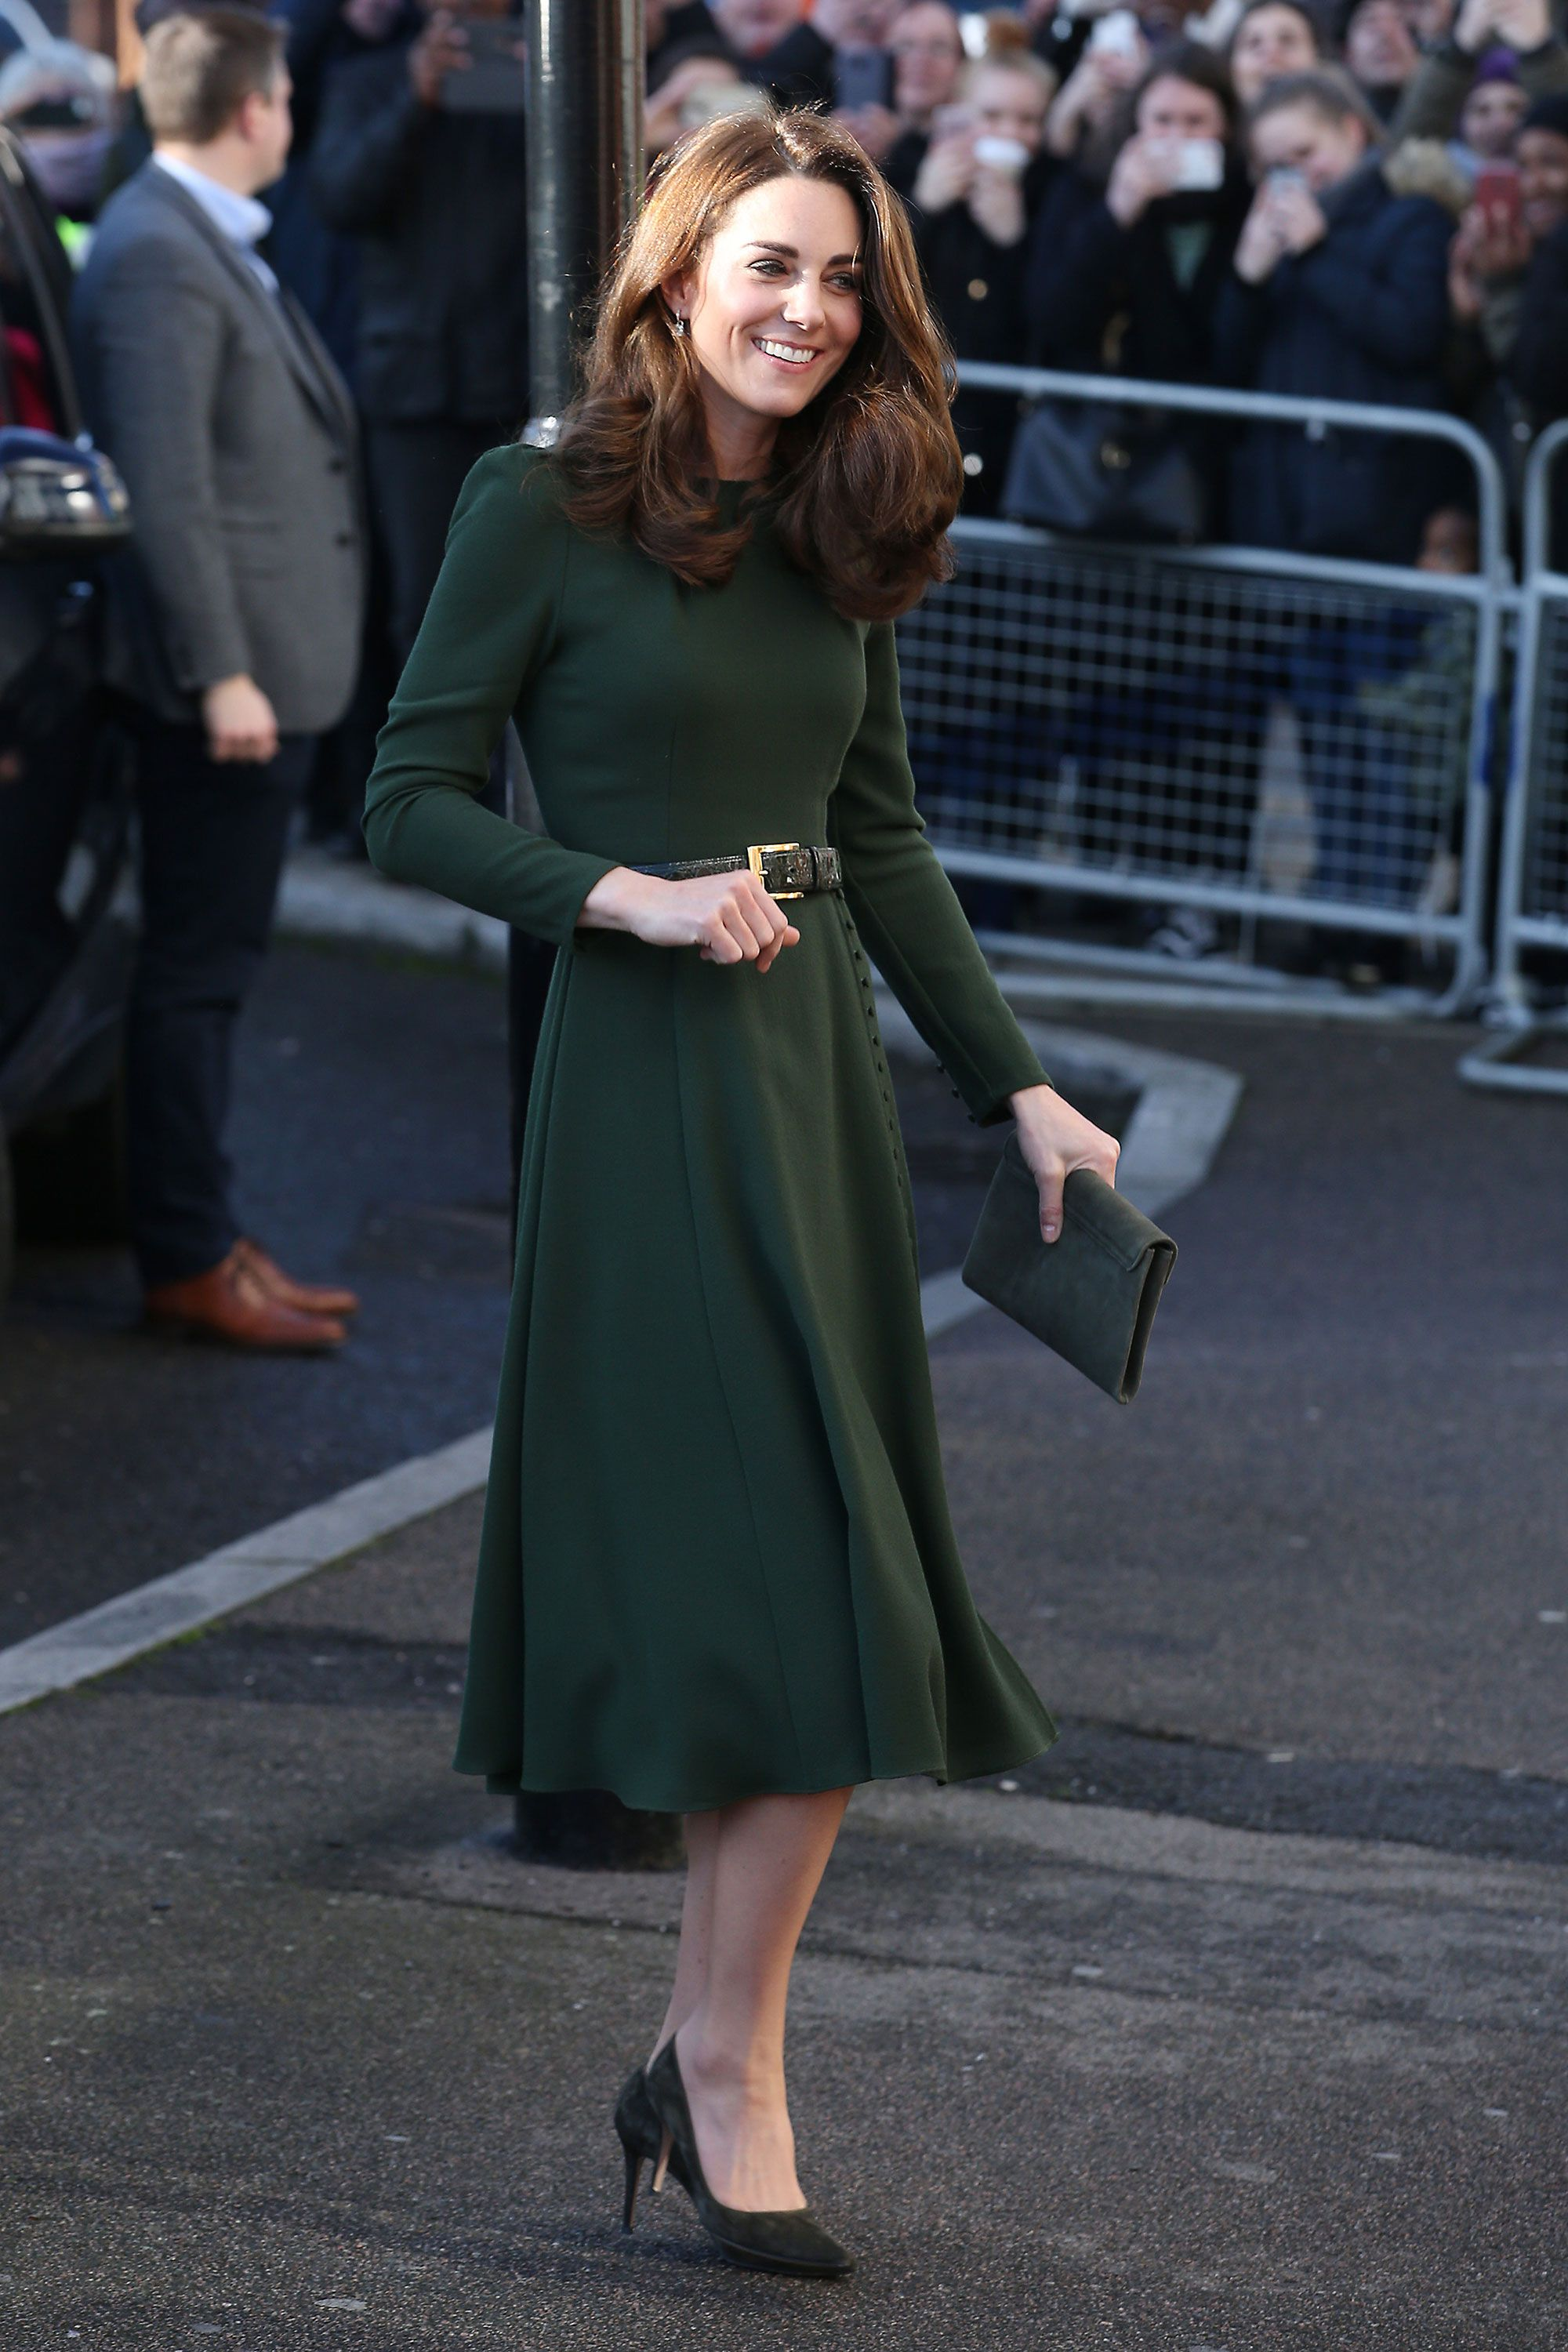 be21122a29 The Duchess of Cambridge s best looks - Best fashion and style moments from  Kate Middleton